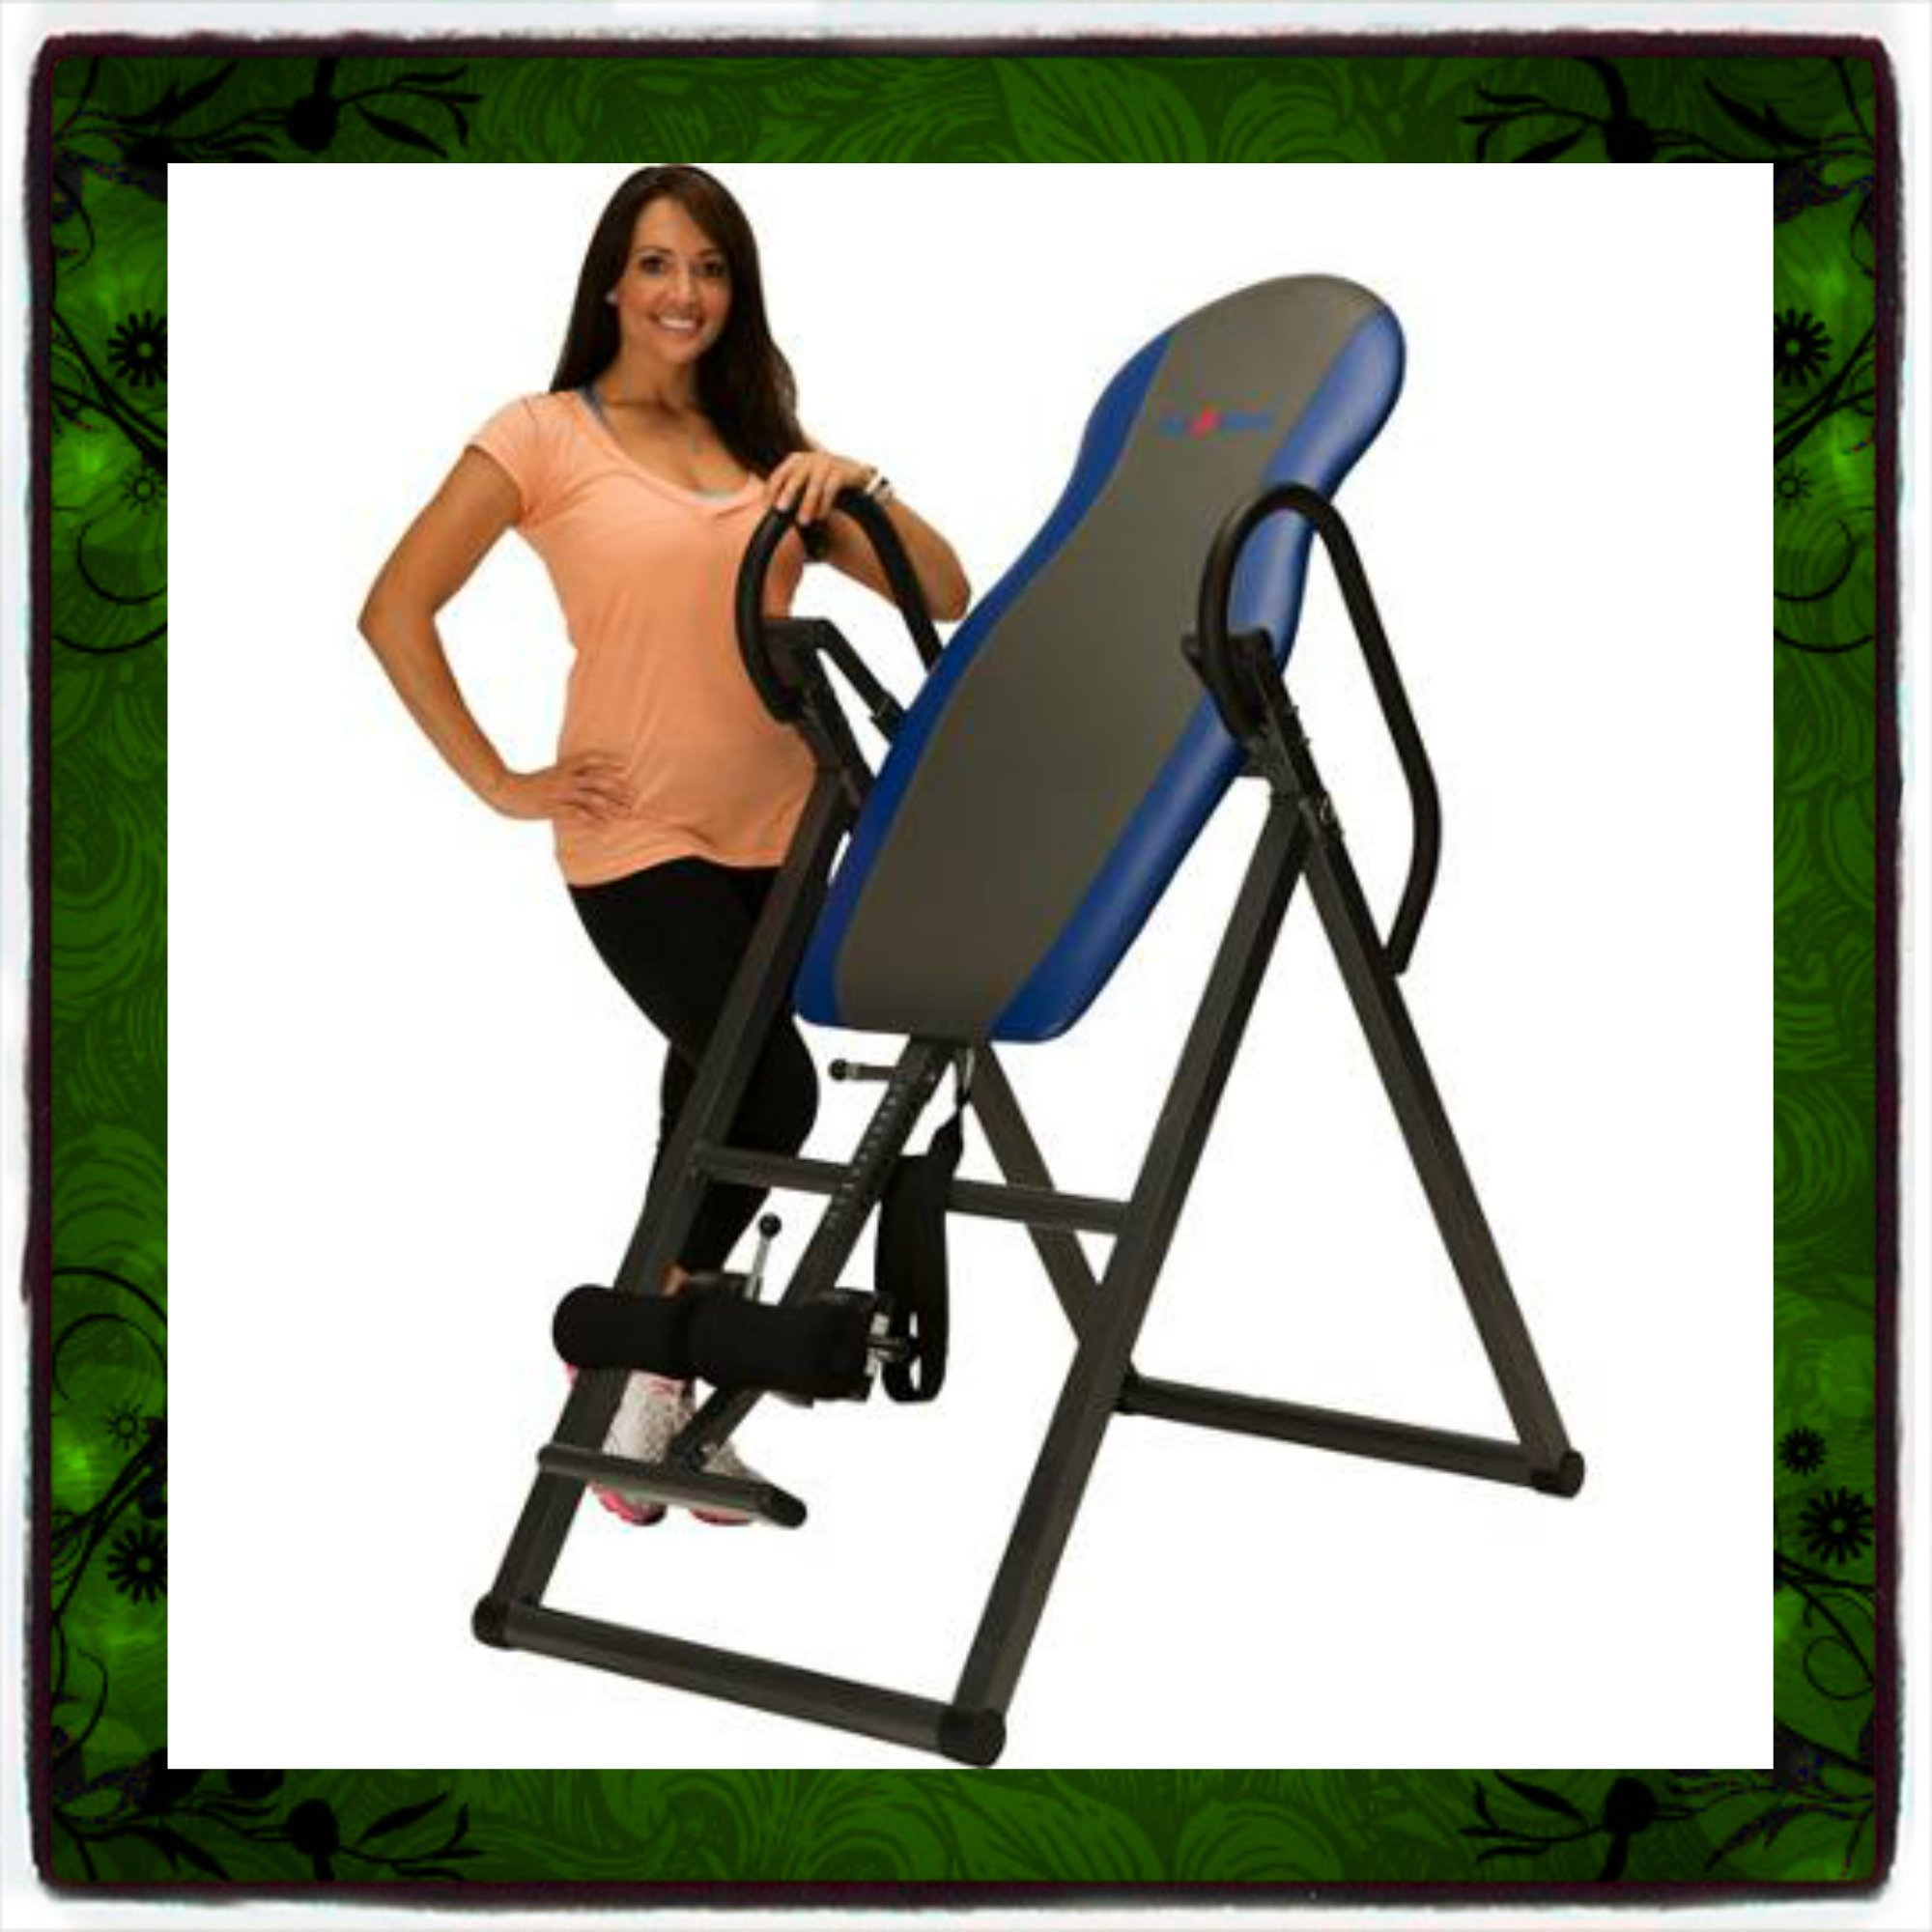 Inversion Table Deluxe Curved Chiropractic Fitness Exercise & Back Reflexology System Tables Therapy Gravity Hang Relief Ups Pain Teeter New Ironman Folding Foldable up Boots Home Gym Yoga Gyms Workout Sporting Goods Strength Training Relaxation Cardiovas by Skroutz